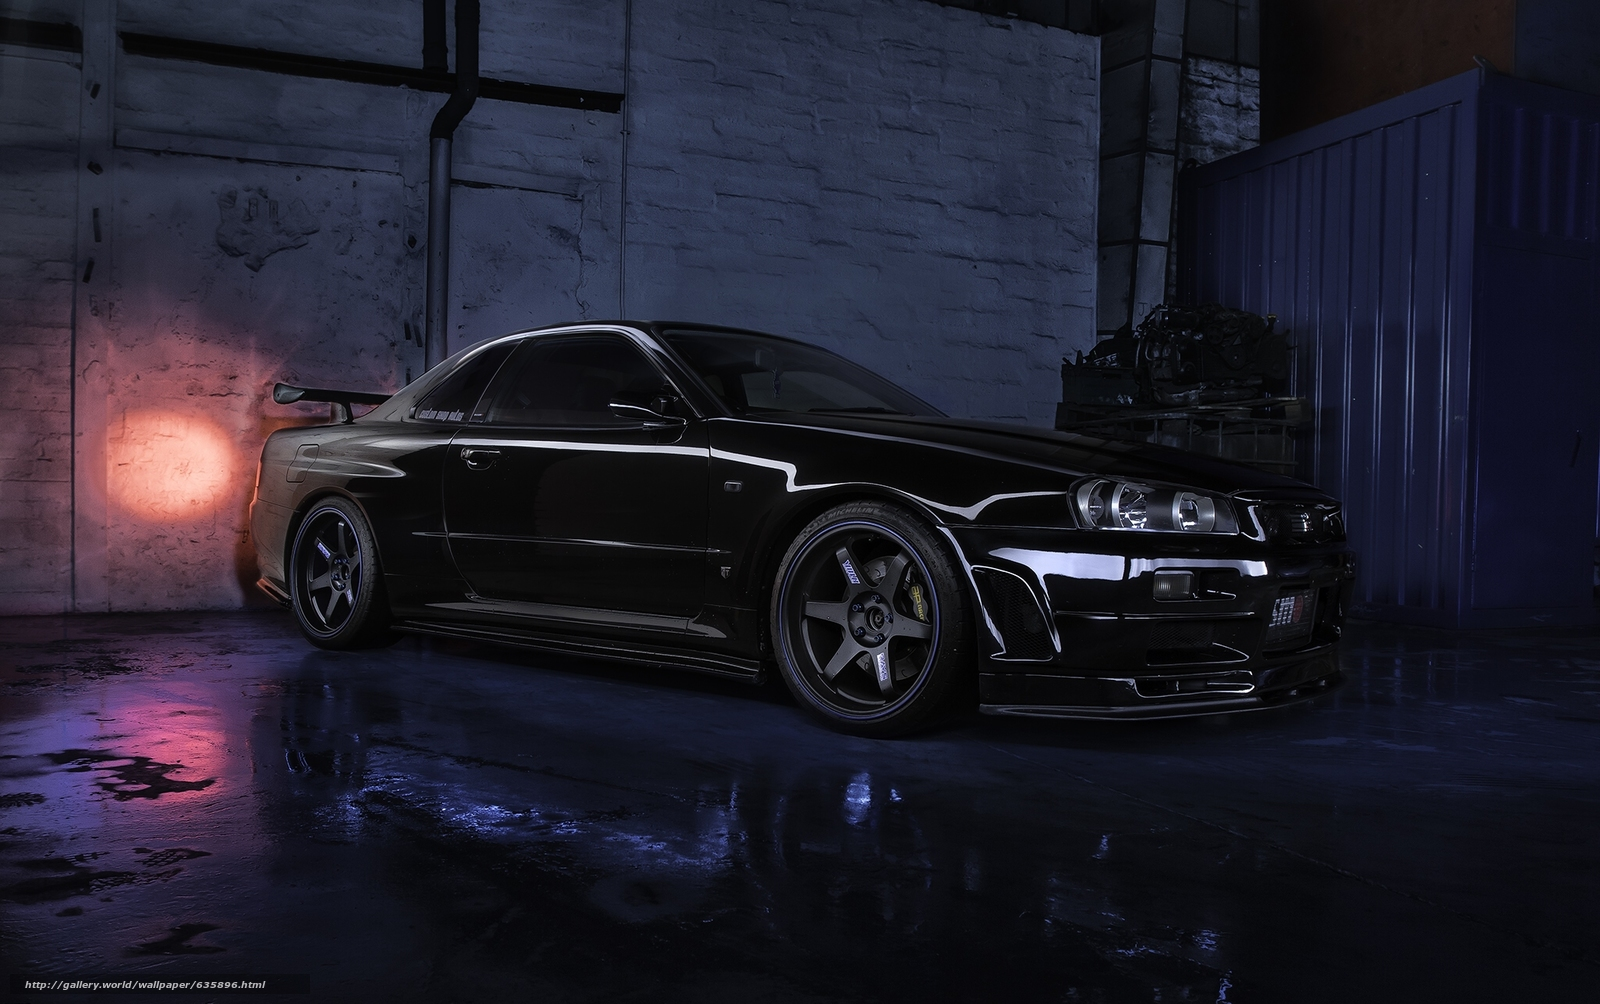 Download wallpaper Nissan Skyline R34 GTR V,  Nissan,  Skyline free desktop wallpaper in the resolution 2048x1285 — picture №635896